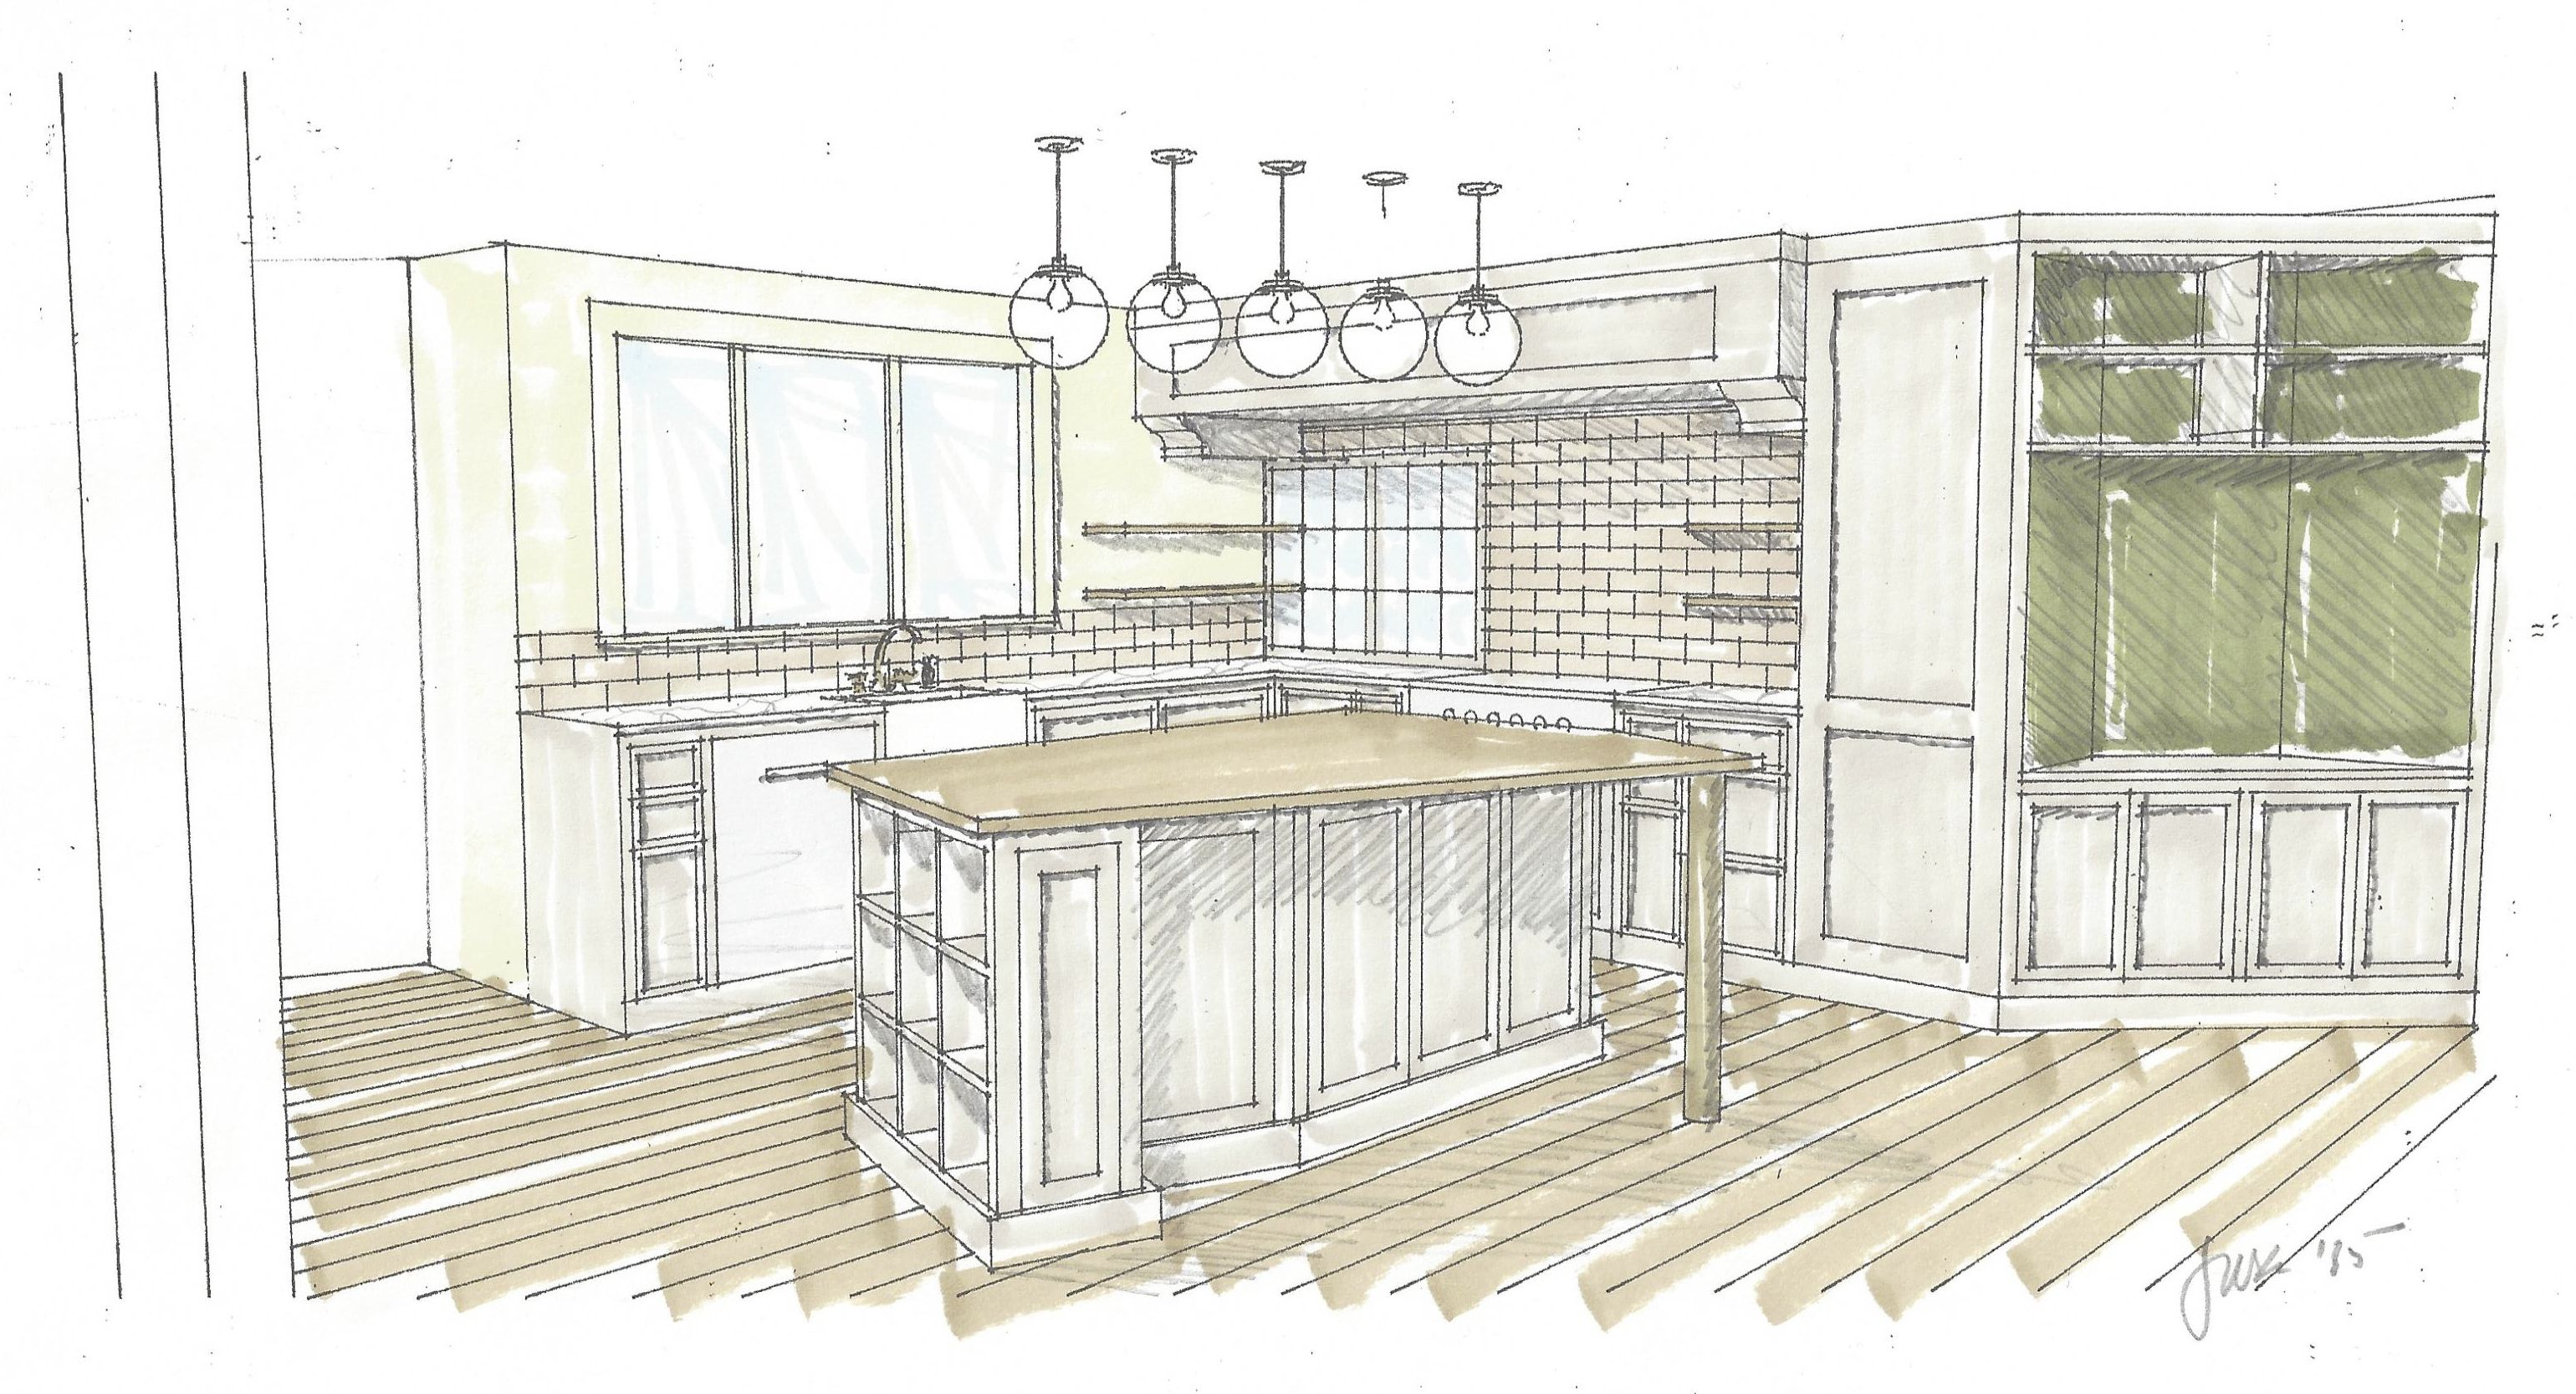 Dining room perspective drawing - Perspective Drawing Of Custom Kitchen Island With View To Pass Through Window To Dining Room By